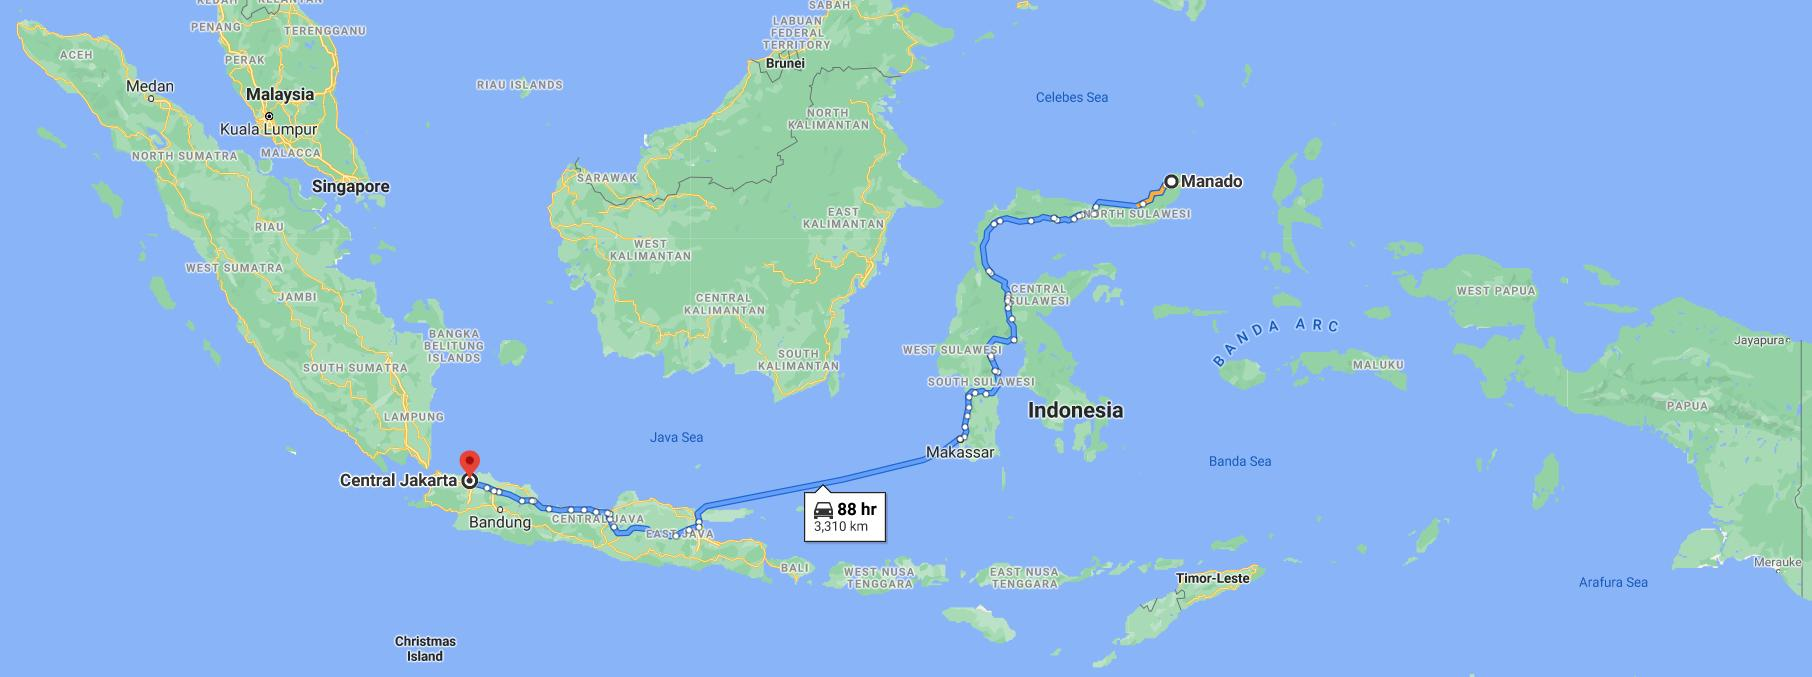 Approximate Fiber Optic Cable Route From Manado To Jakarta